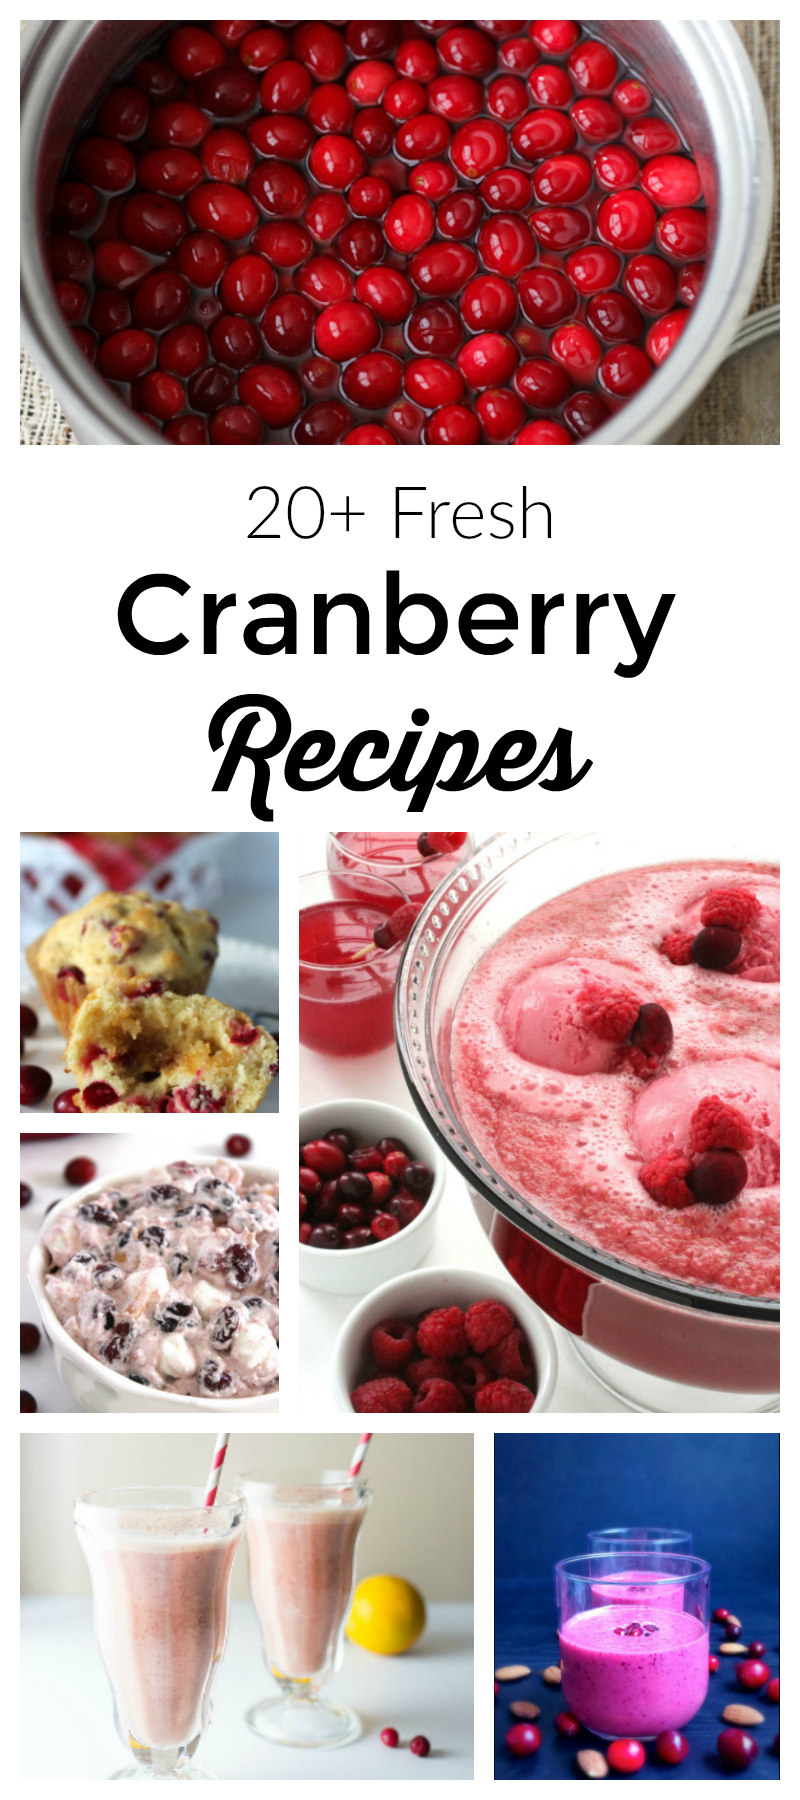 More Than 20 Fresh Cranberry Recipes Mama Likes To Cook